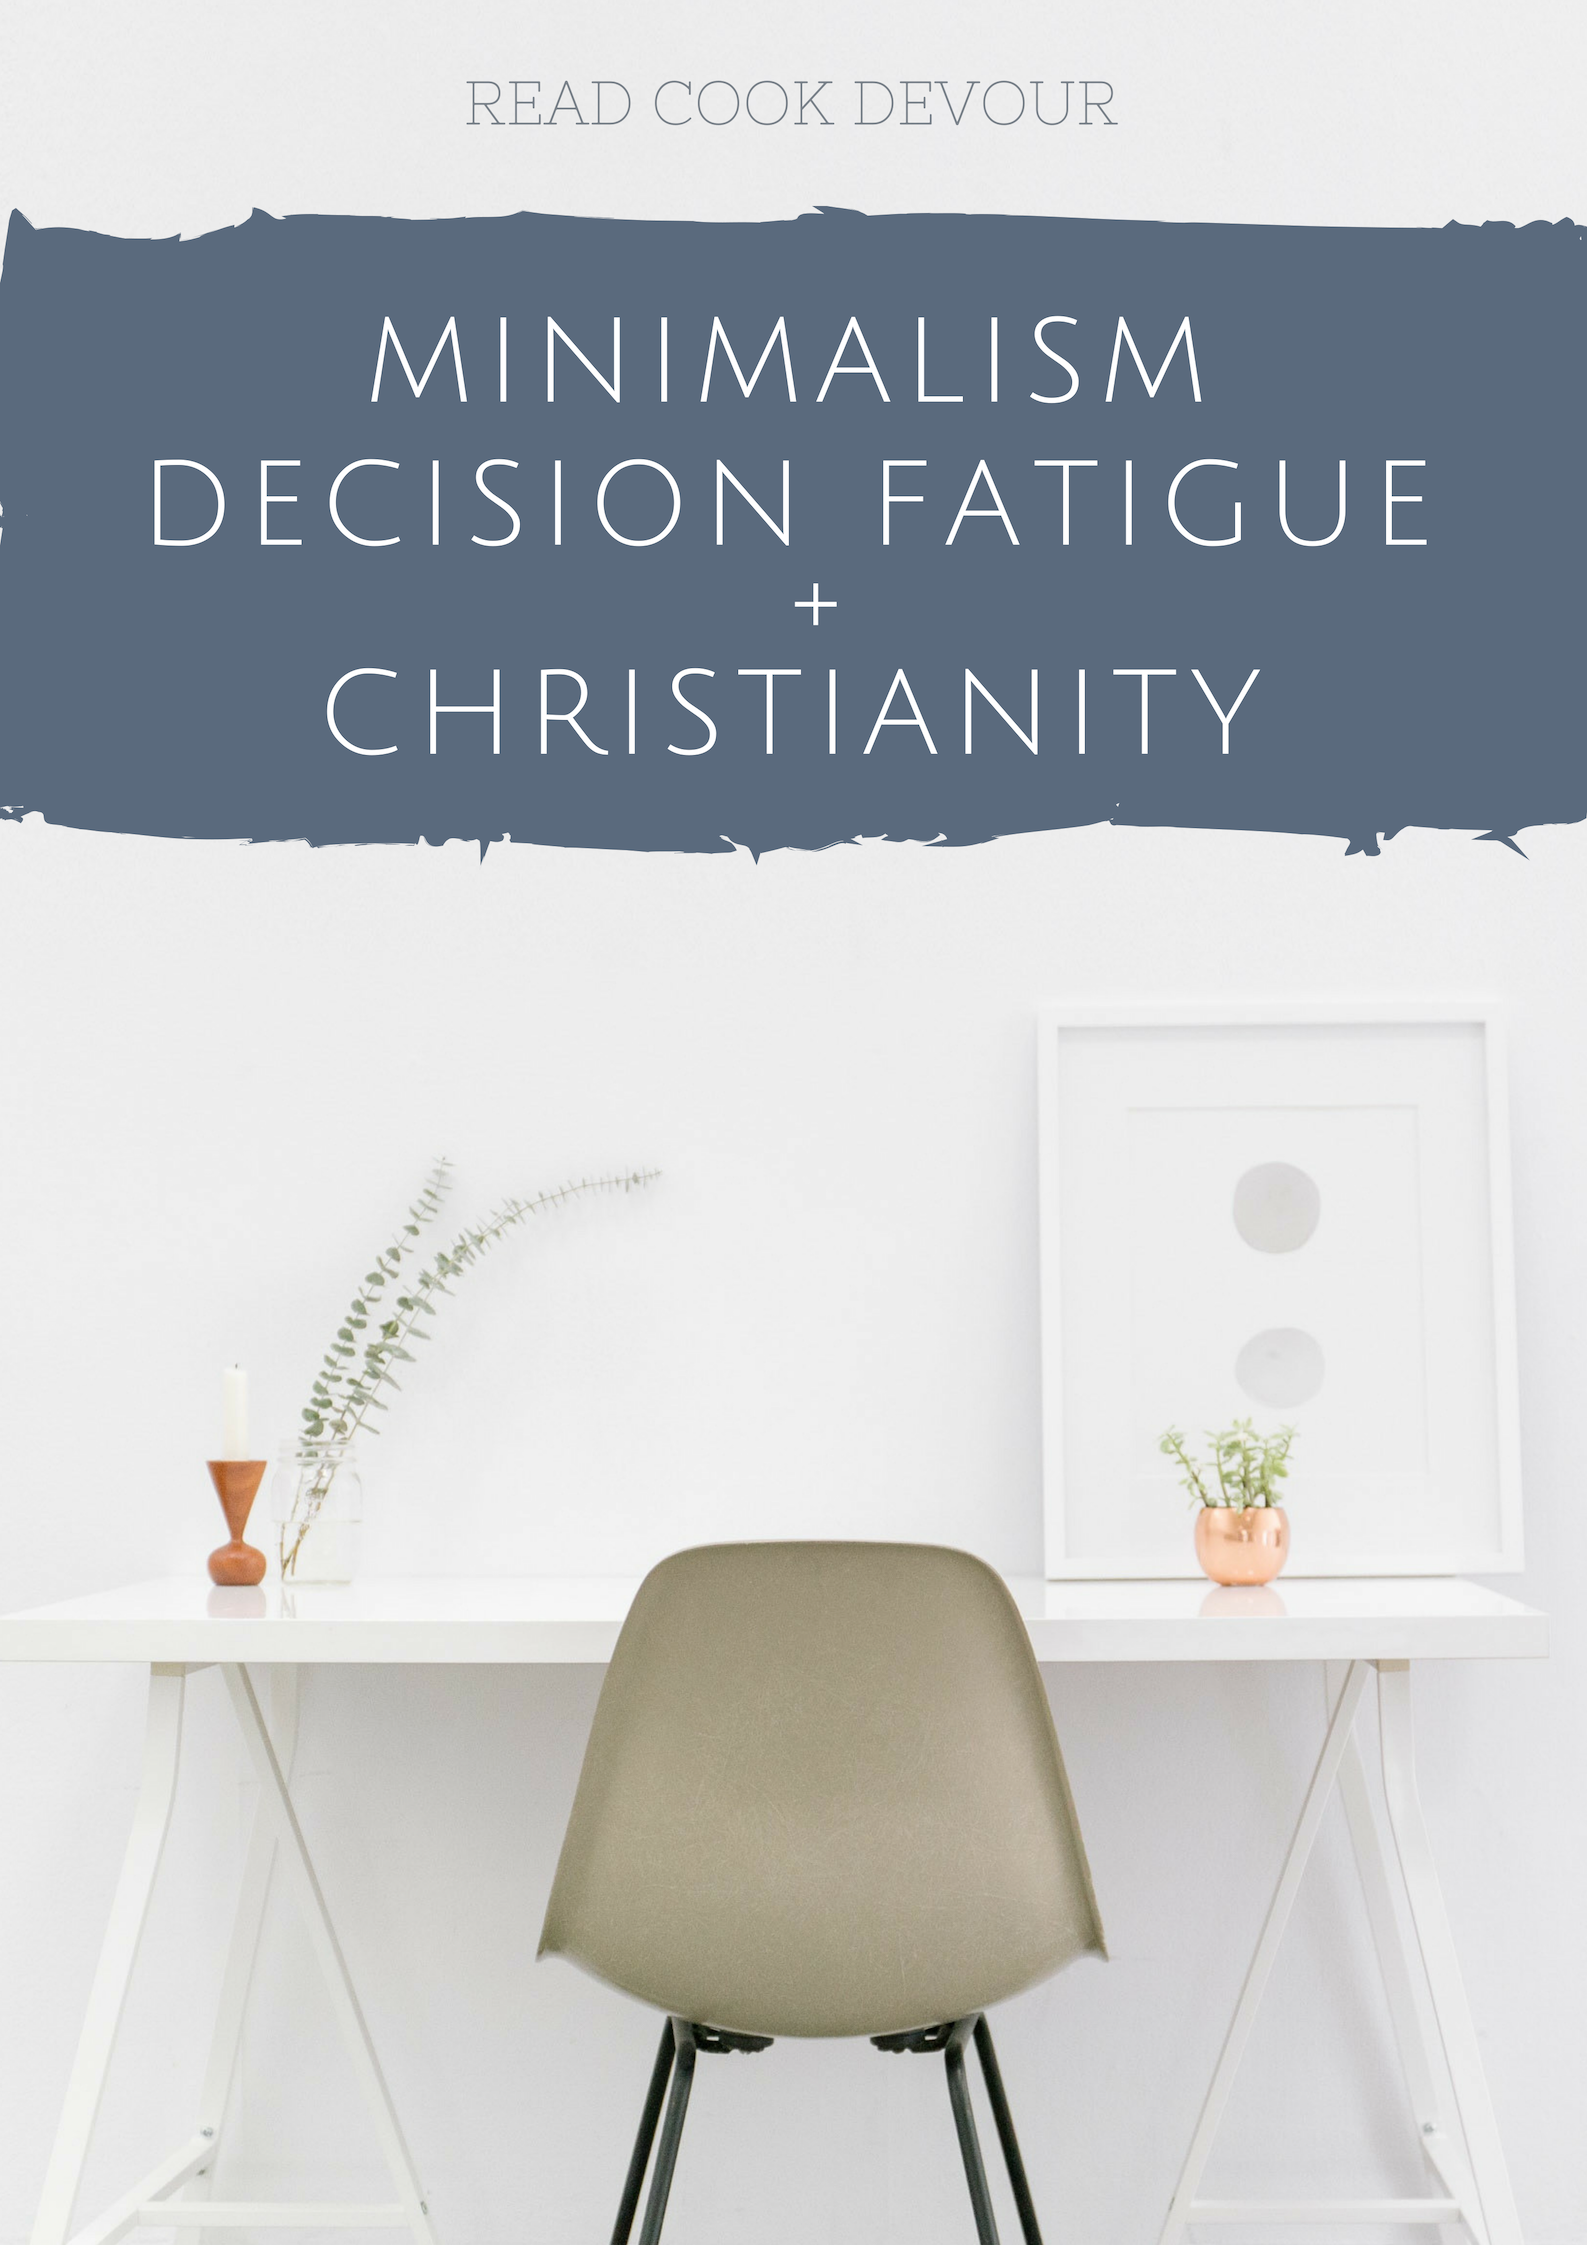 Minimalism, Decision Fatigue + Christianity